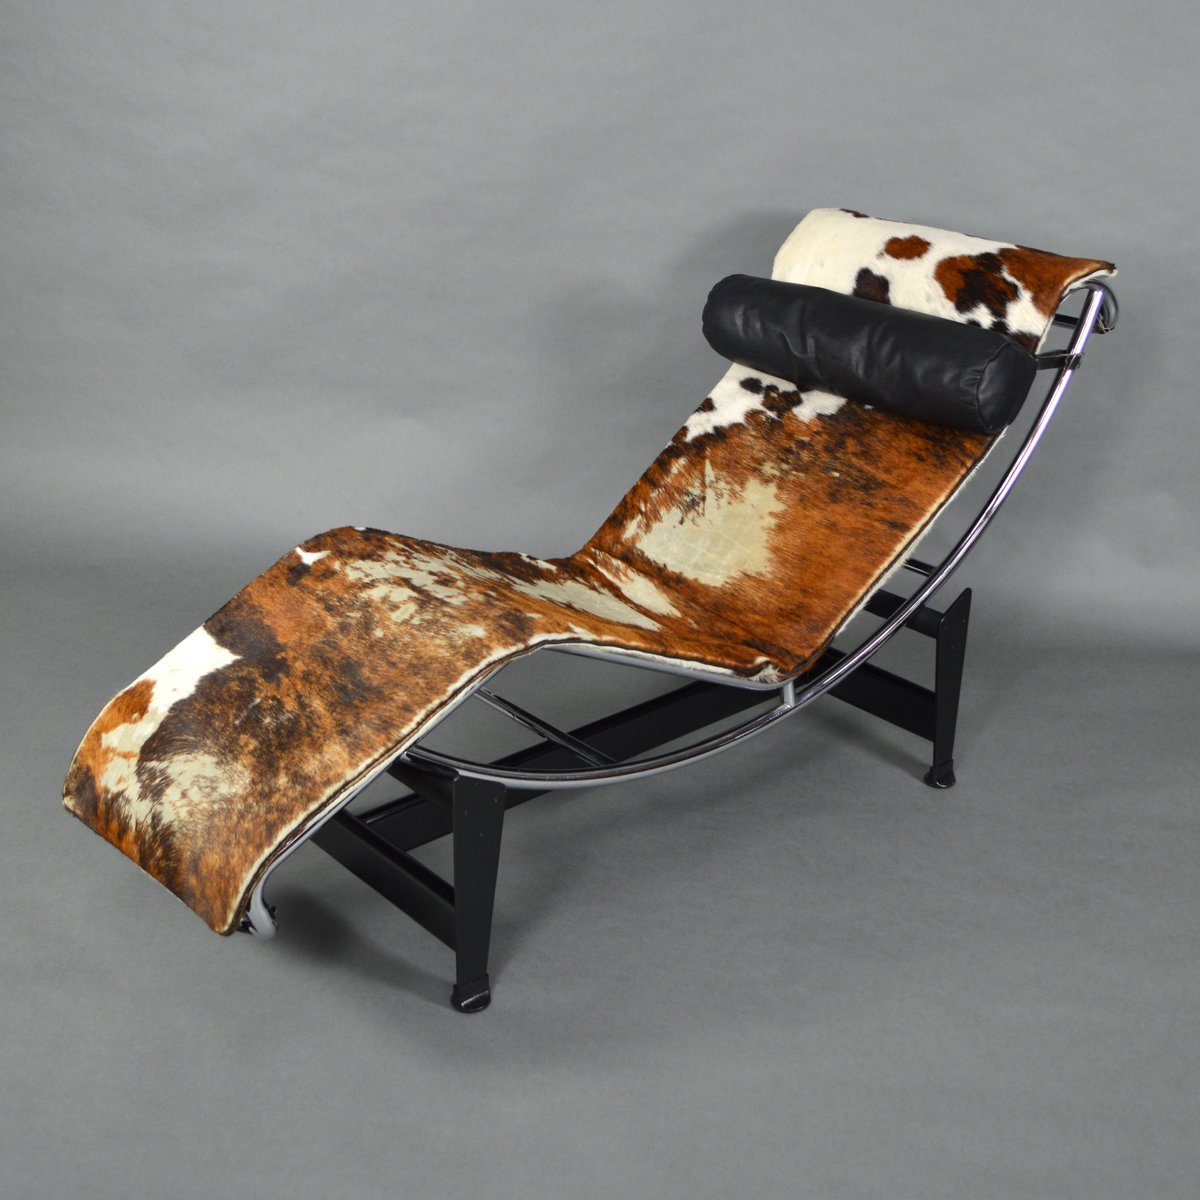 Lc4 chaise lounge by le corbusier for cassina 1960s for for Chaise lounge cassina